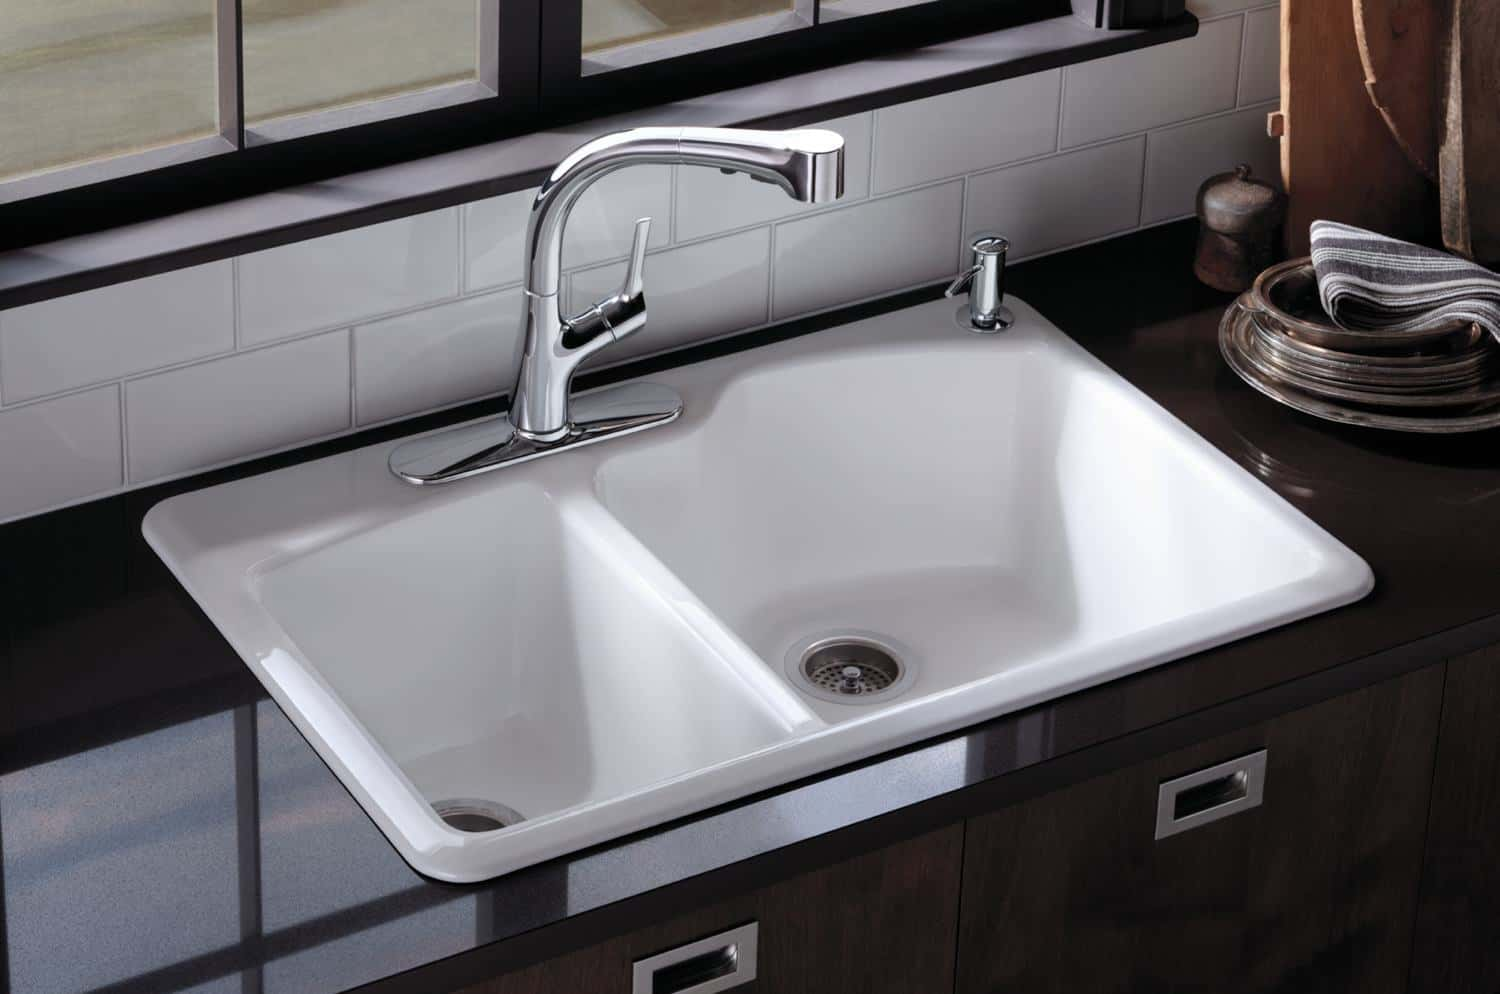 Top Kitchen Sinks Types of kitchen sinks read this before you buy kohler k 5870 2 58 wheatland top mount sink workwithnaturefo